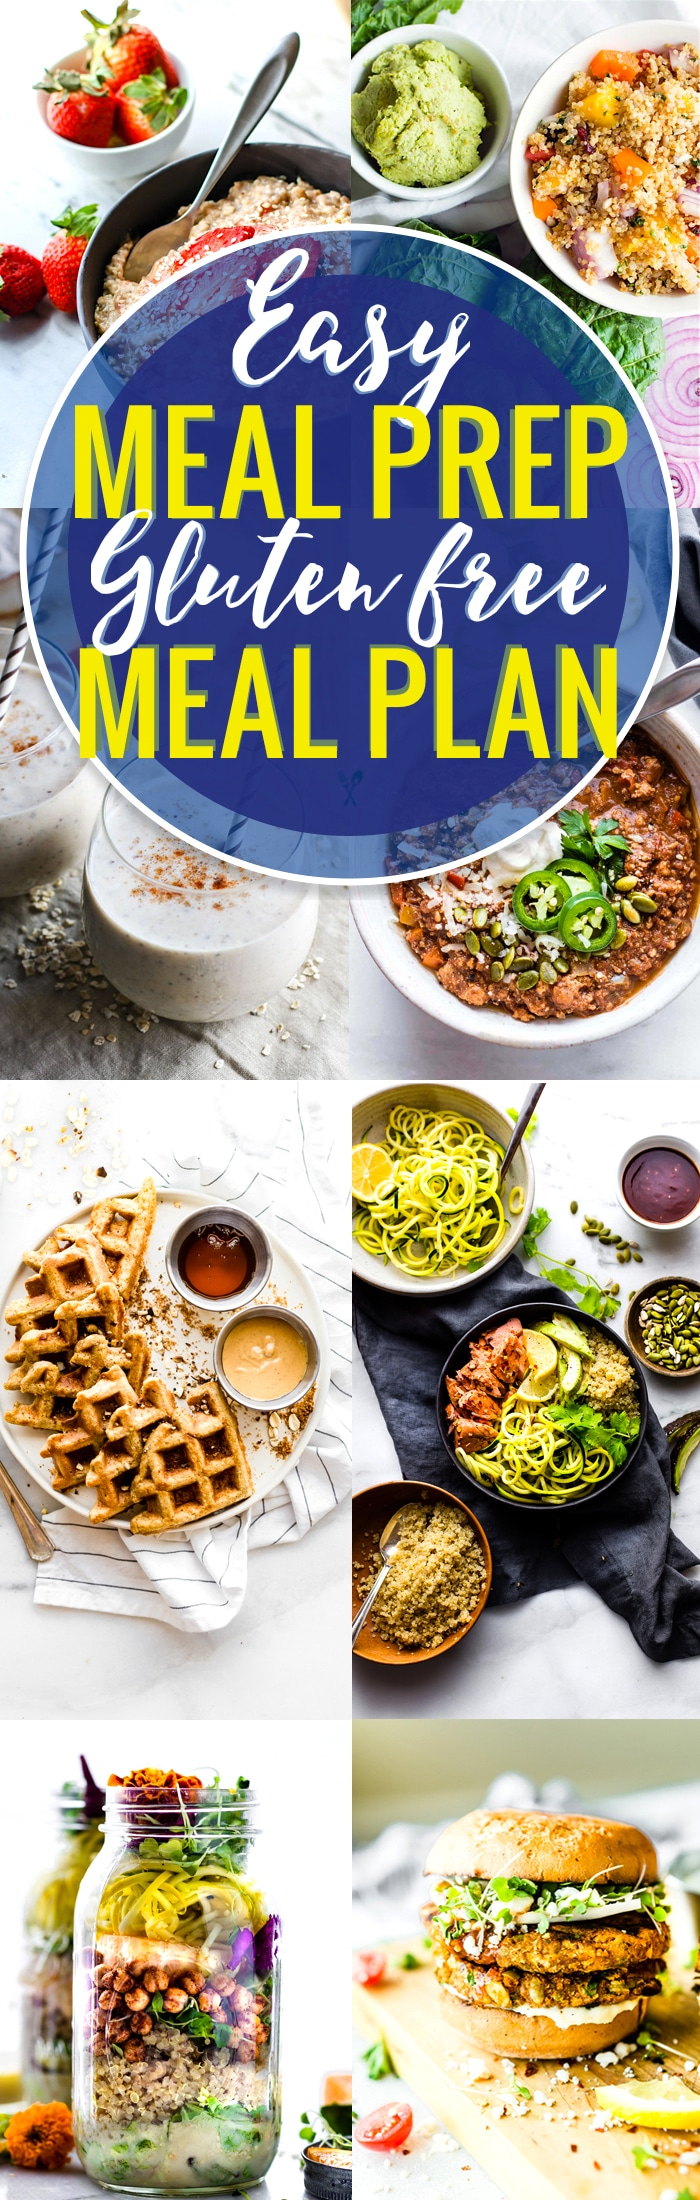 Easy meal prep recipes for a gluten free meal plan cotter crunch these easy meal prep recipes are perfect for a gluten free meal plan by prepping forumfinder Image collections